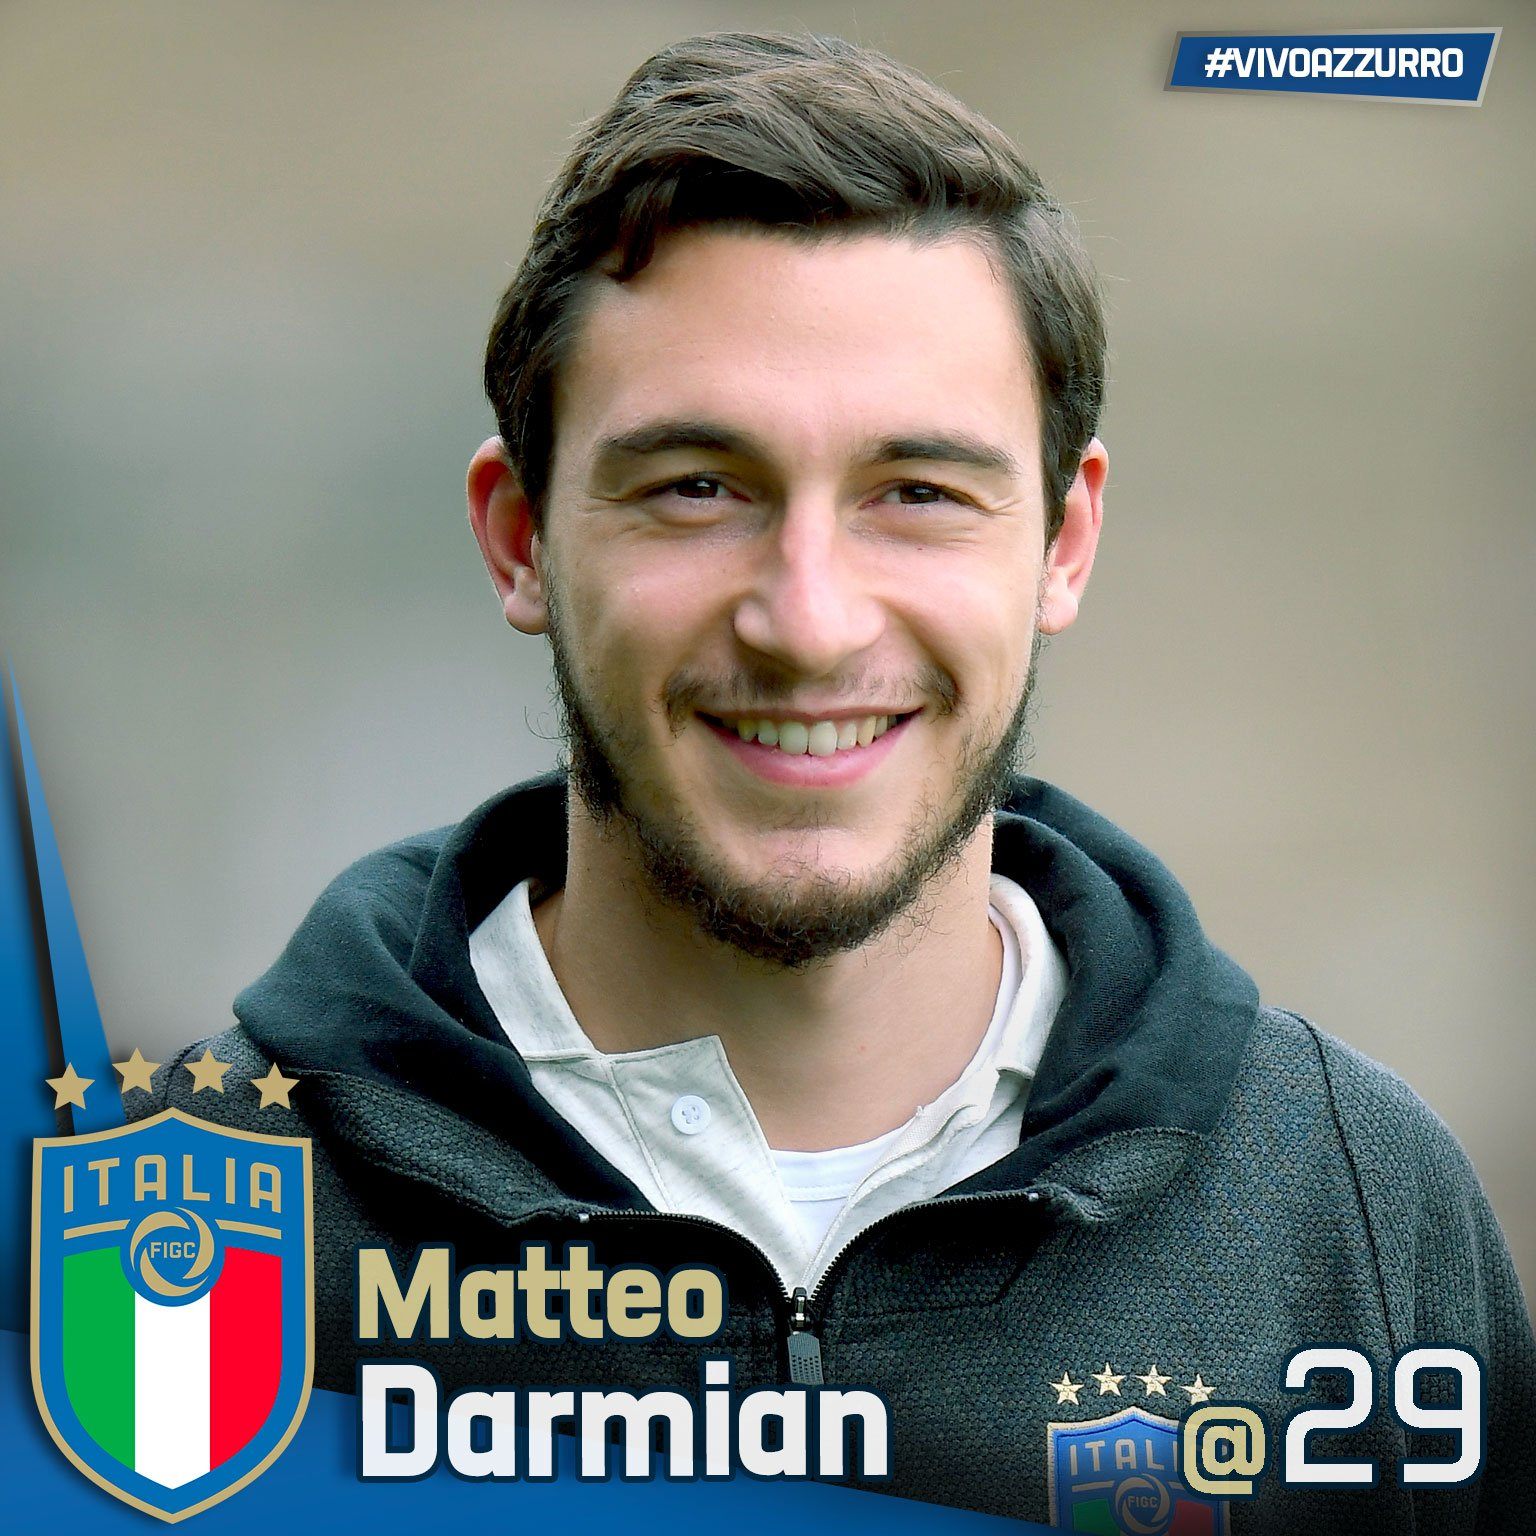 Happy Birthday to the pair of Matteo and Francesco